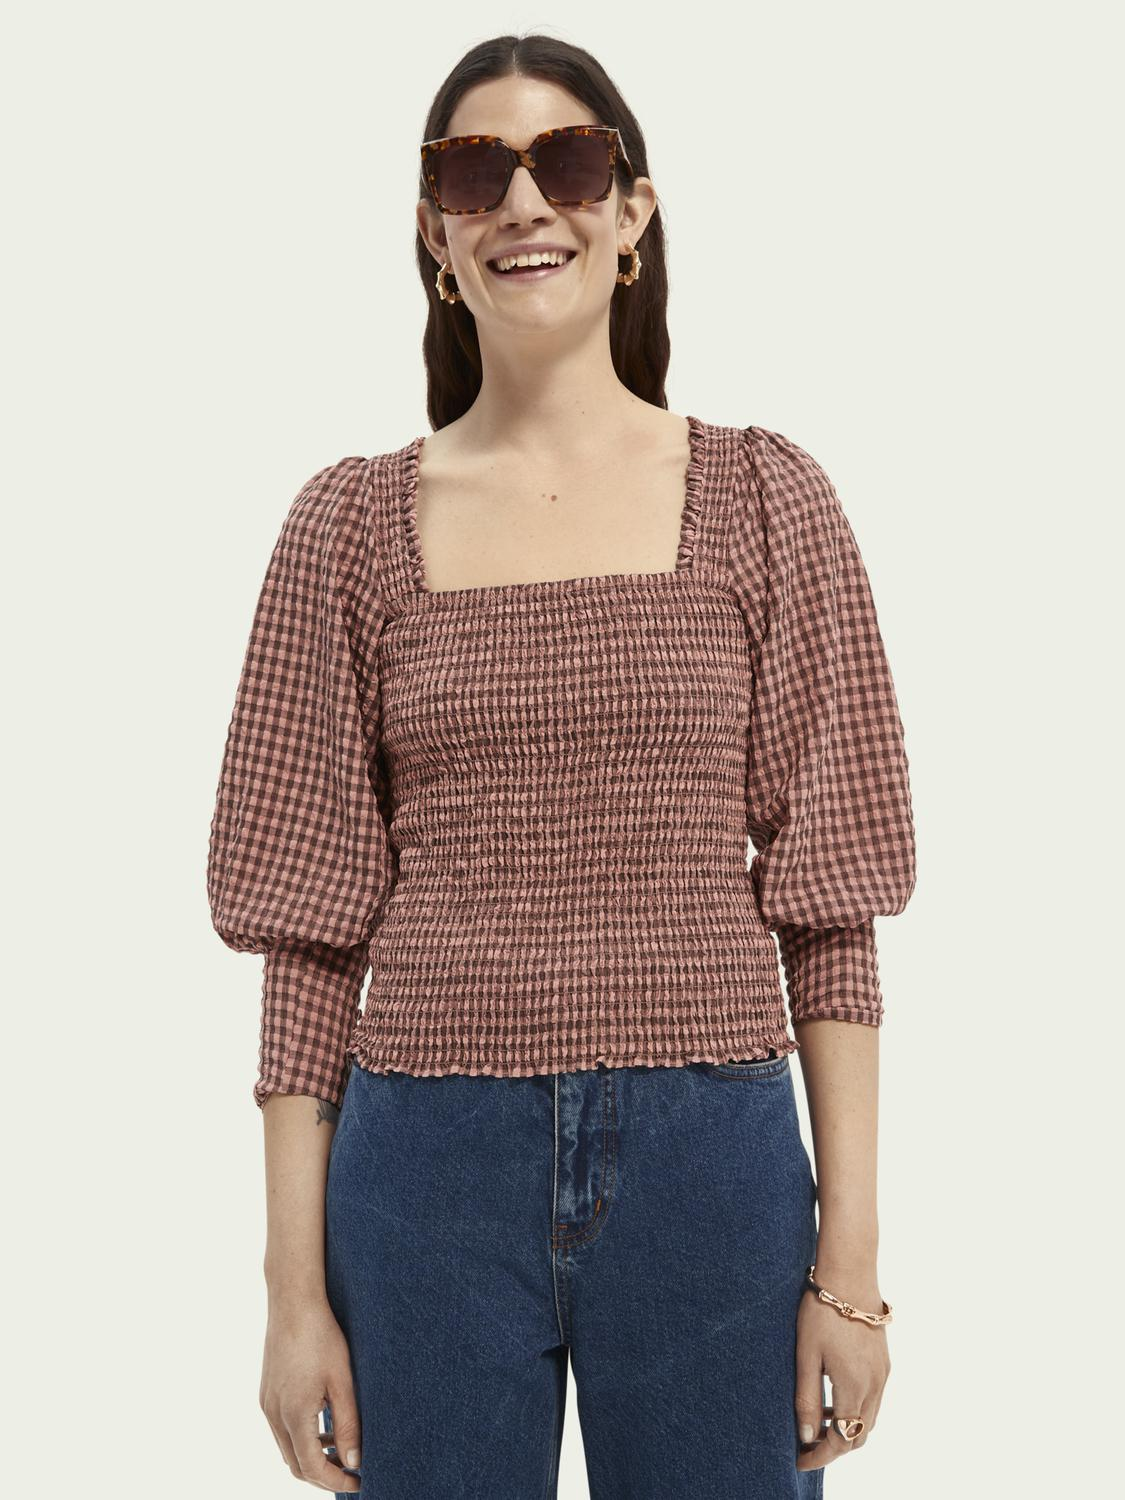 Seersucker top with smock details and square neck